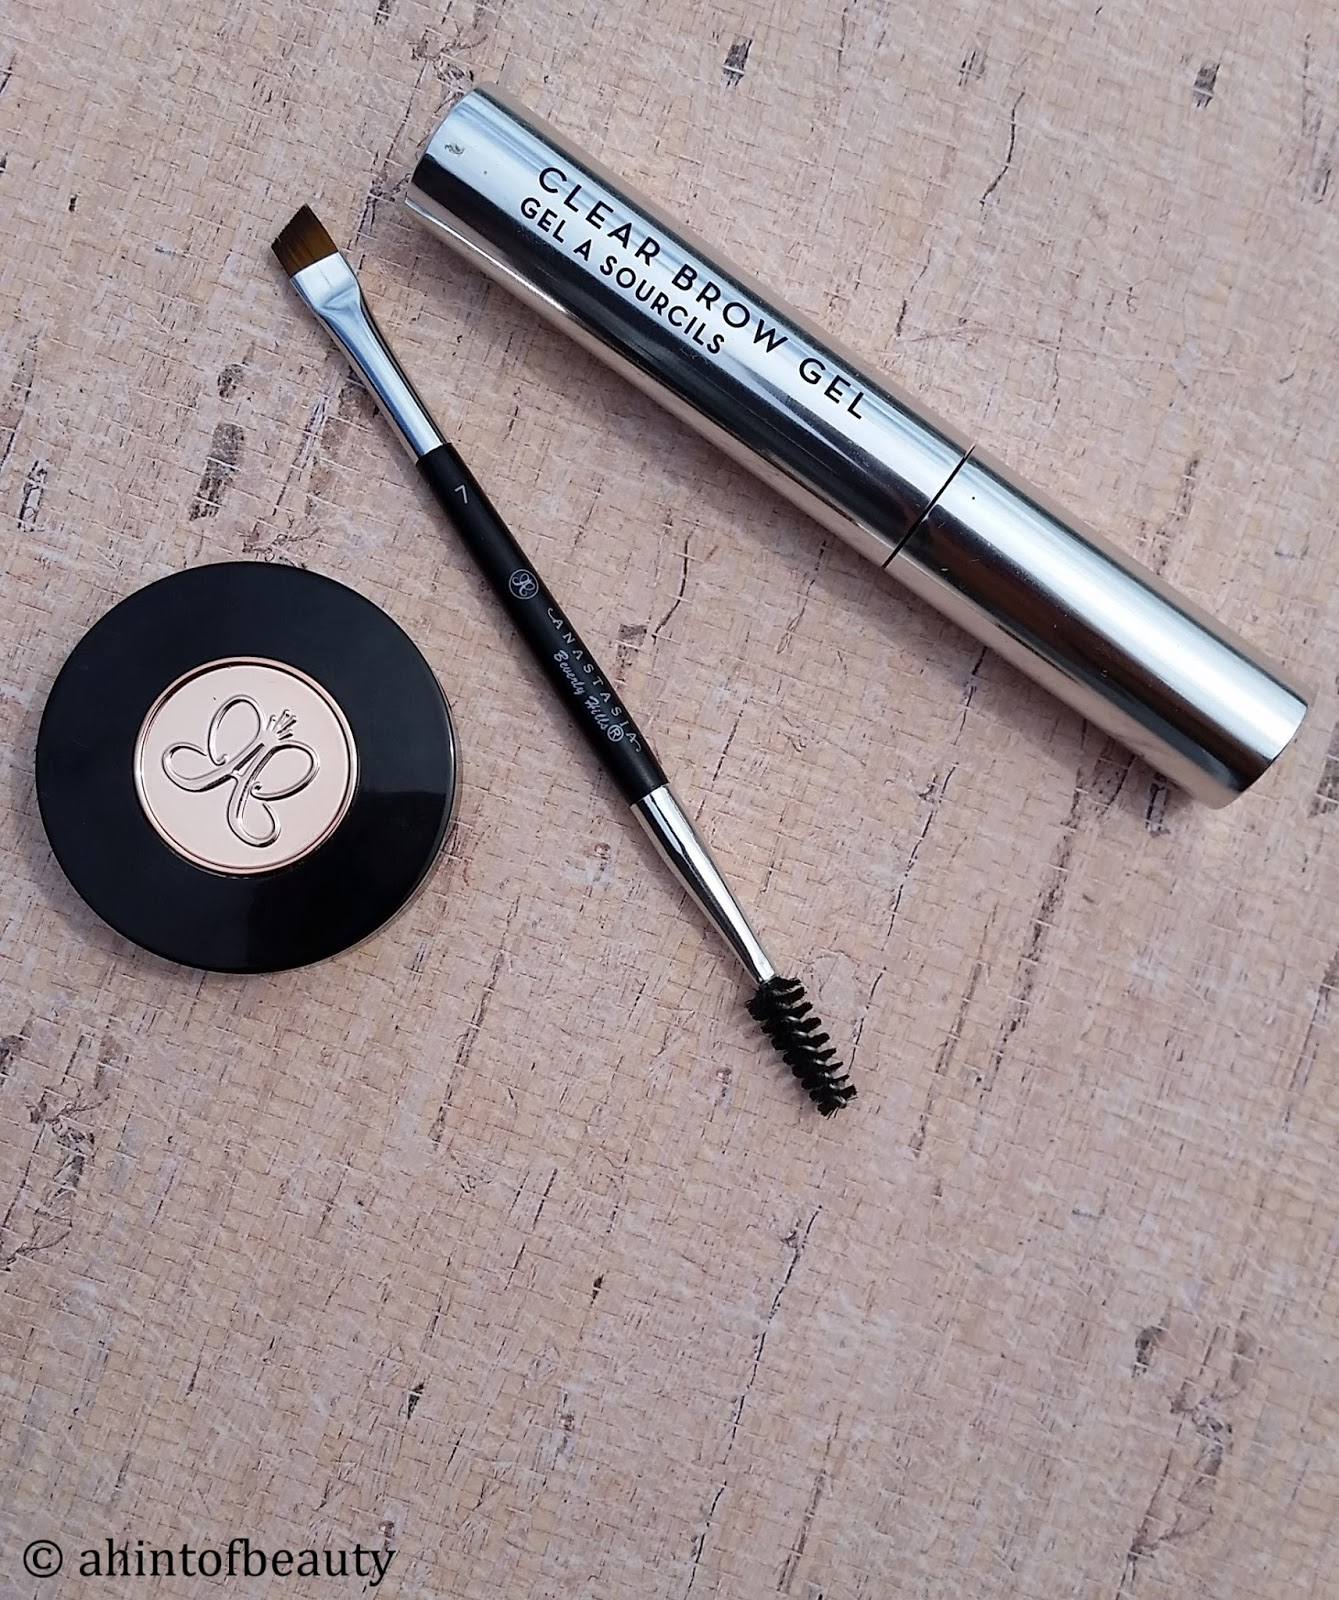 anastasia eyebrow kit. i was always plucking my eyebrows or getting them threaded in high school. wish had just grown out a little, not touched at all. anastasia eyebrow kit w